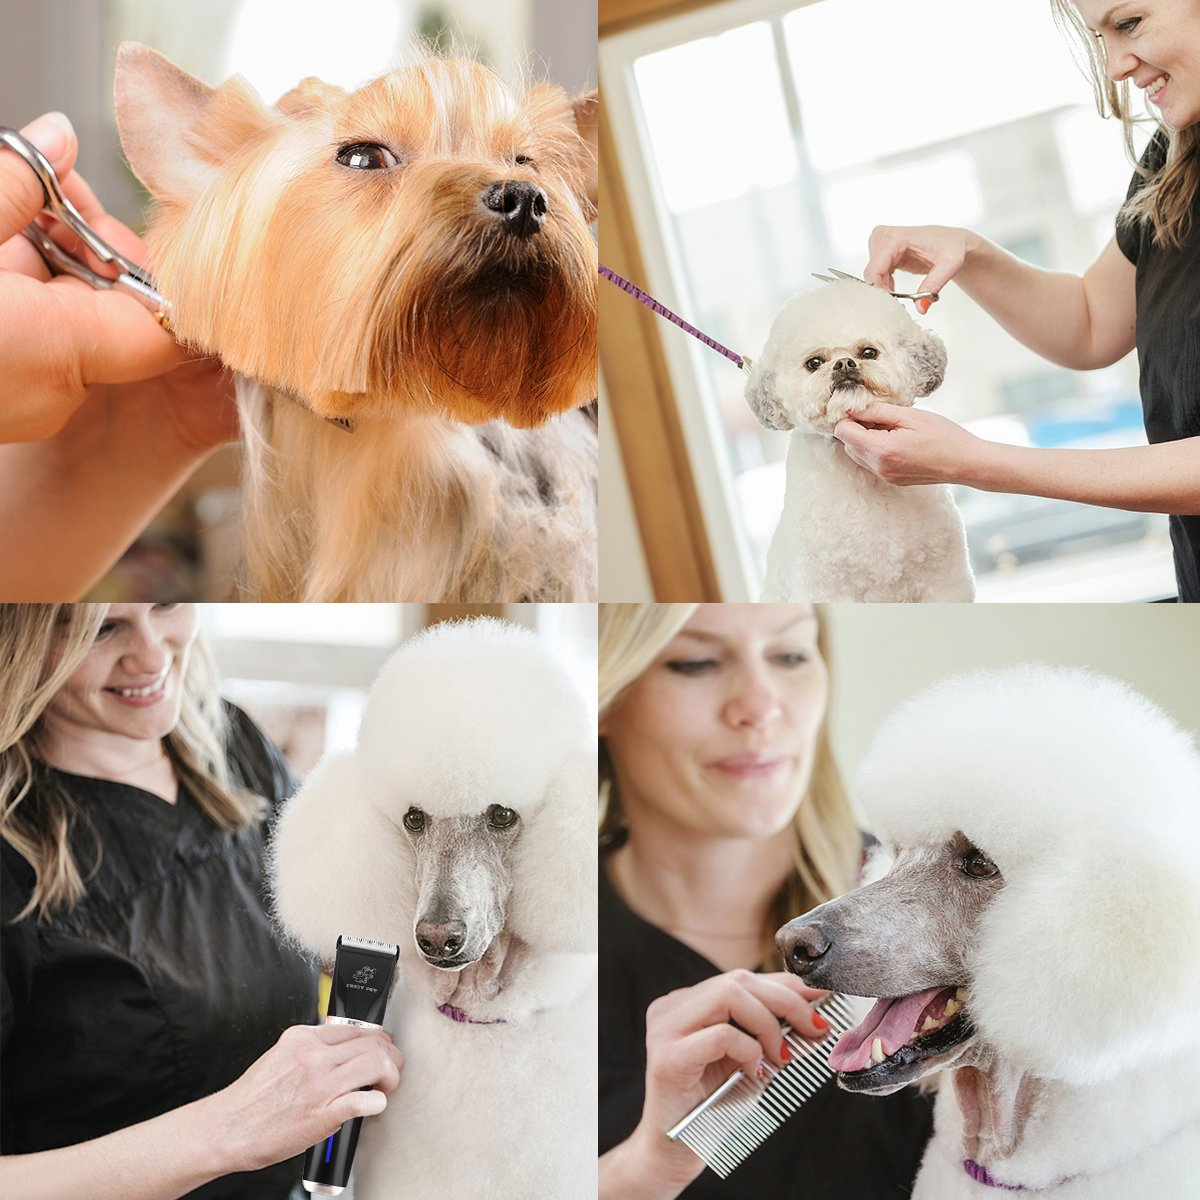 Pet Grooming Clippers Dog Clippers Cat Shaver, 2 Speed Professional Electric Clippers Cordless Rechargeable, Dog Hair Cutter for Thick Coats Long Haired Dog Cat, Quiet Animal Clippers and Trimmer